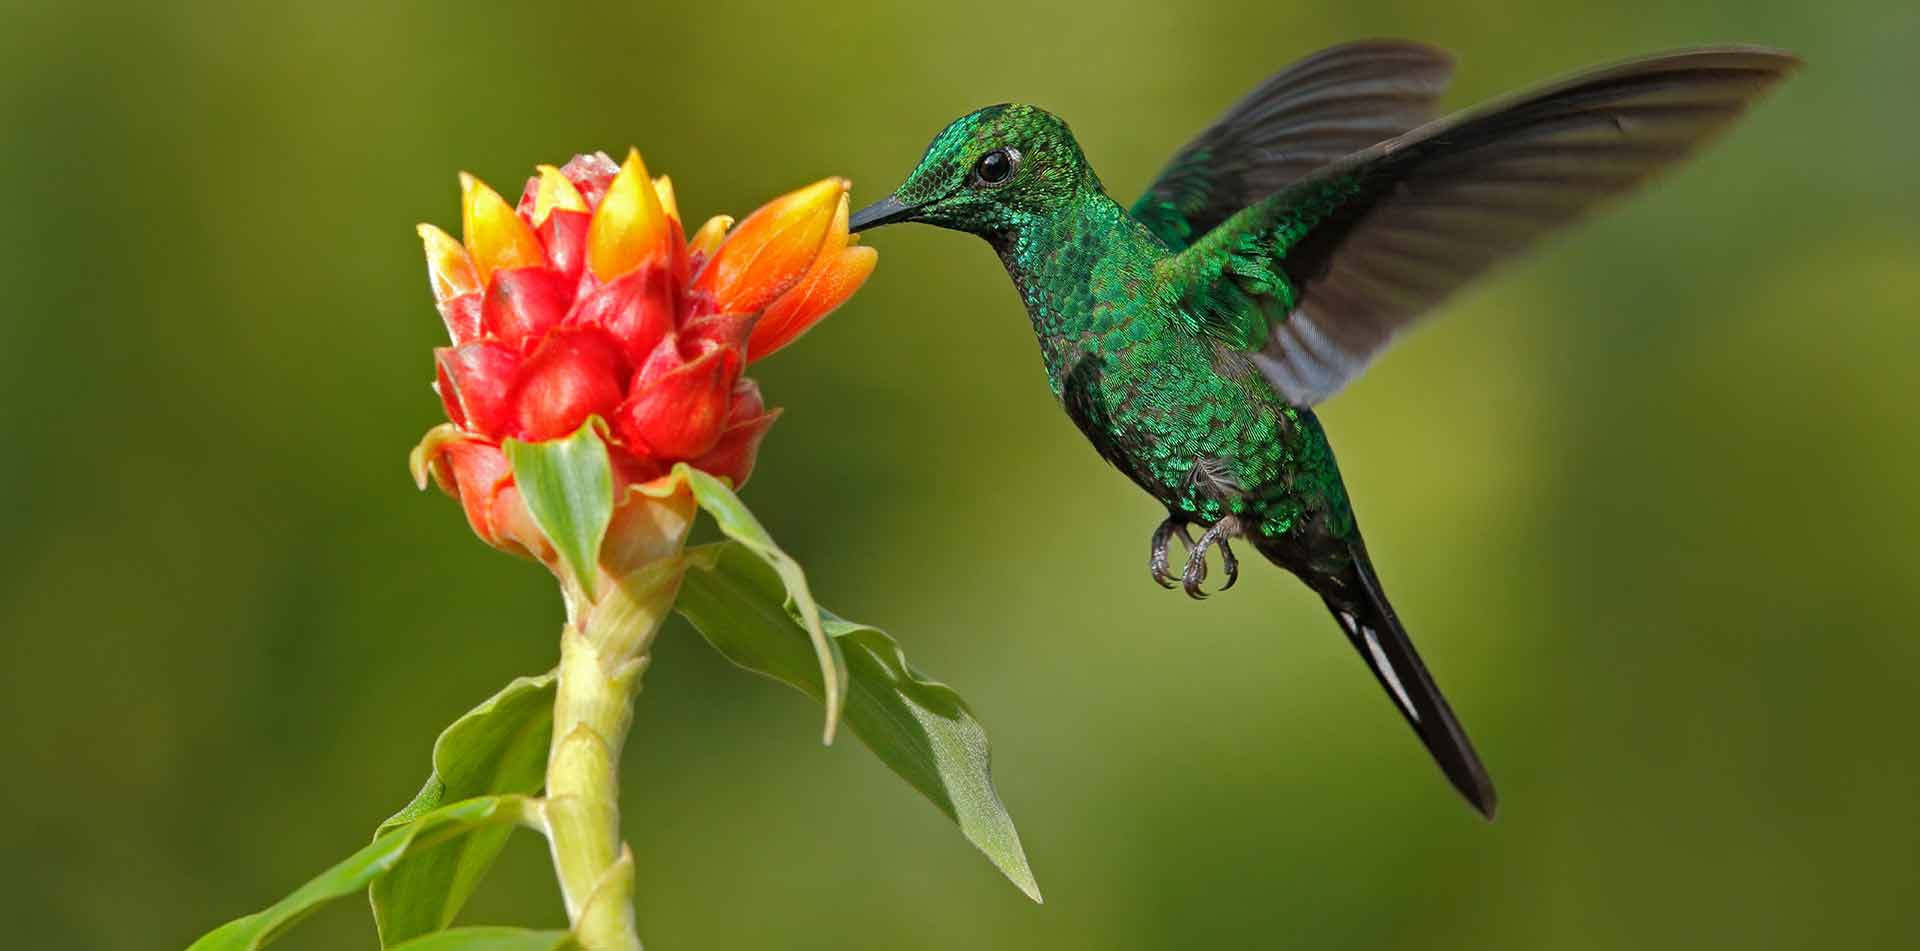 beautiful green hummingbird flapping wings and feeding on nectar from bright exotic flower - luxury vacation destinations